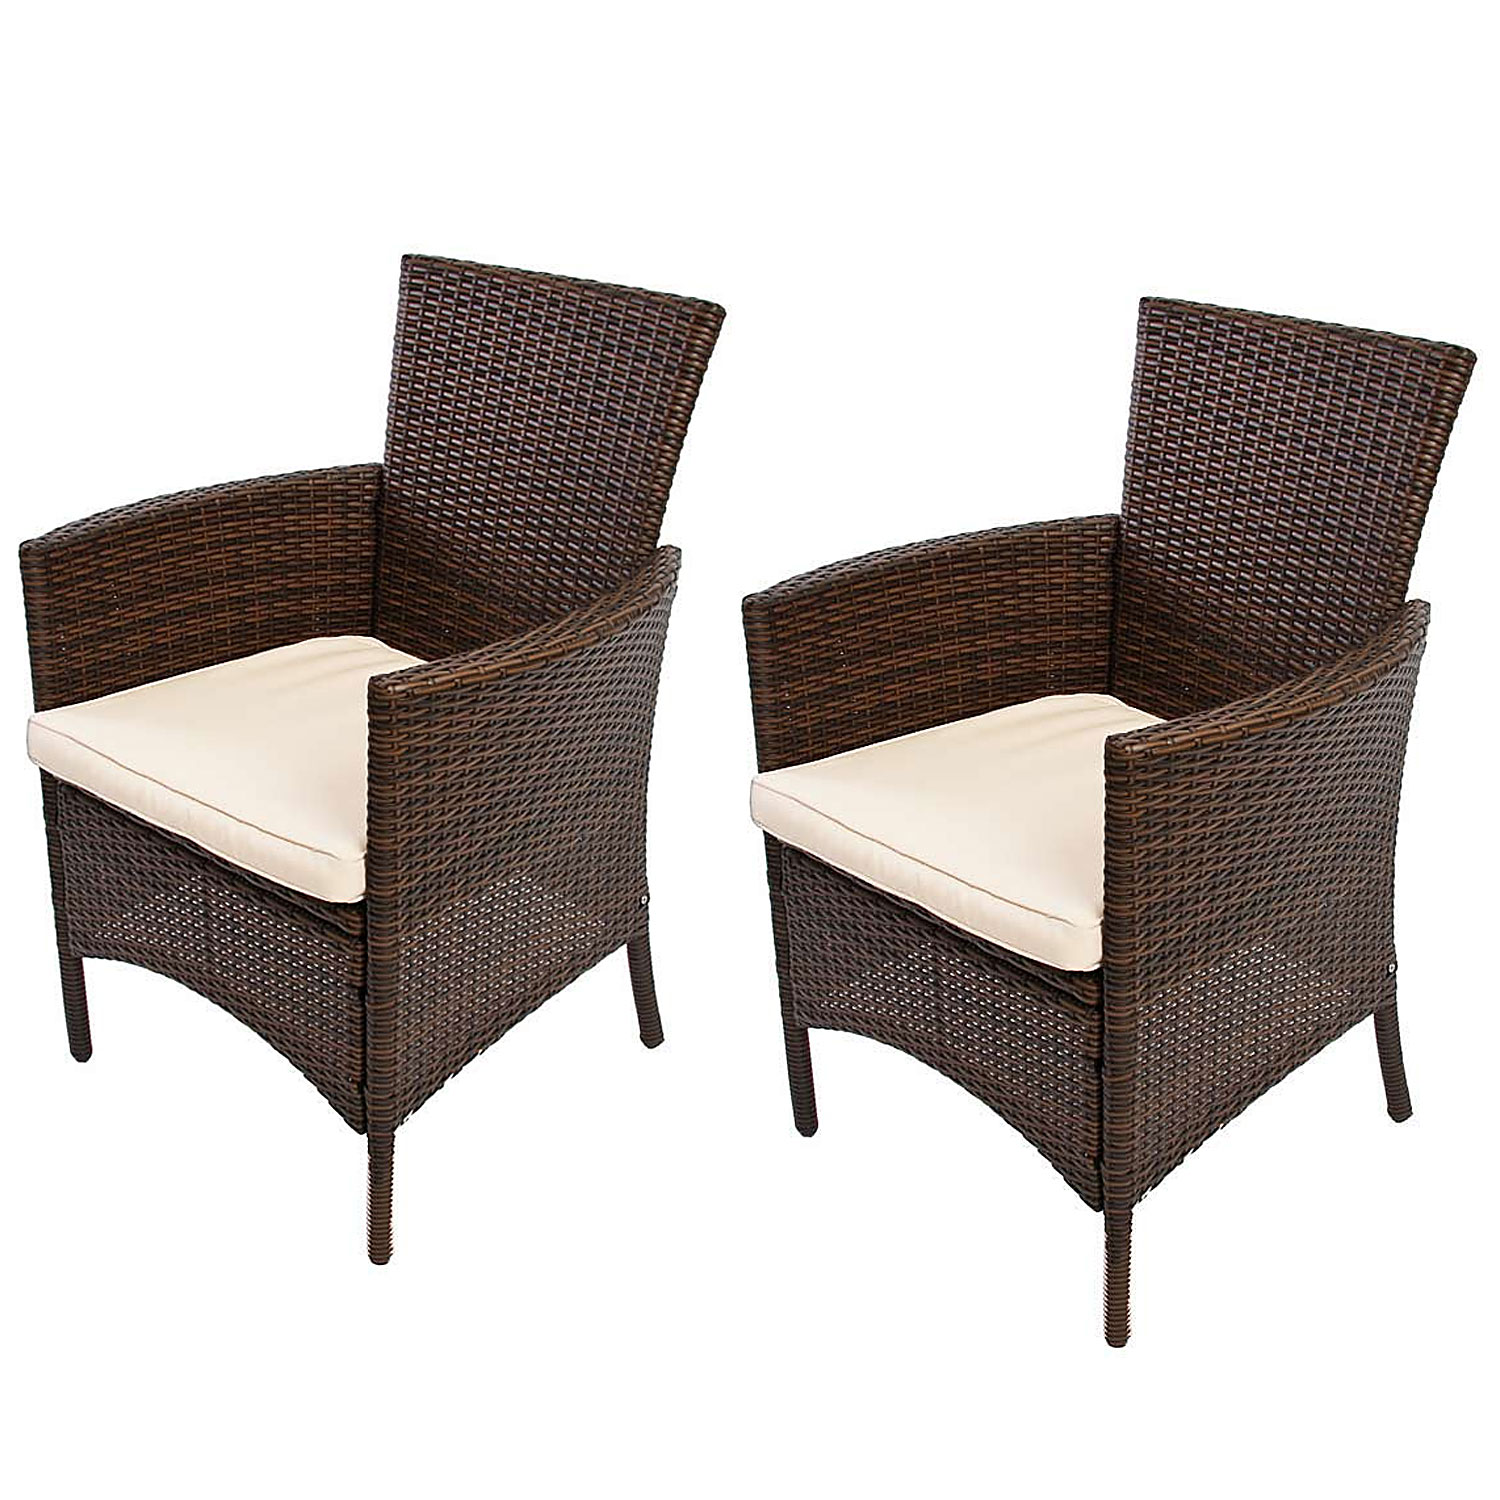 2x gartensessel korbsessel romv poly rattan 85 5x61x60 cm braun meliert ebay. Black Bedroom Furniture Sets. Home Design Ideas